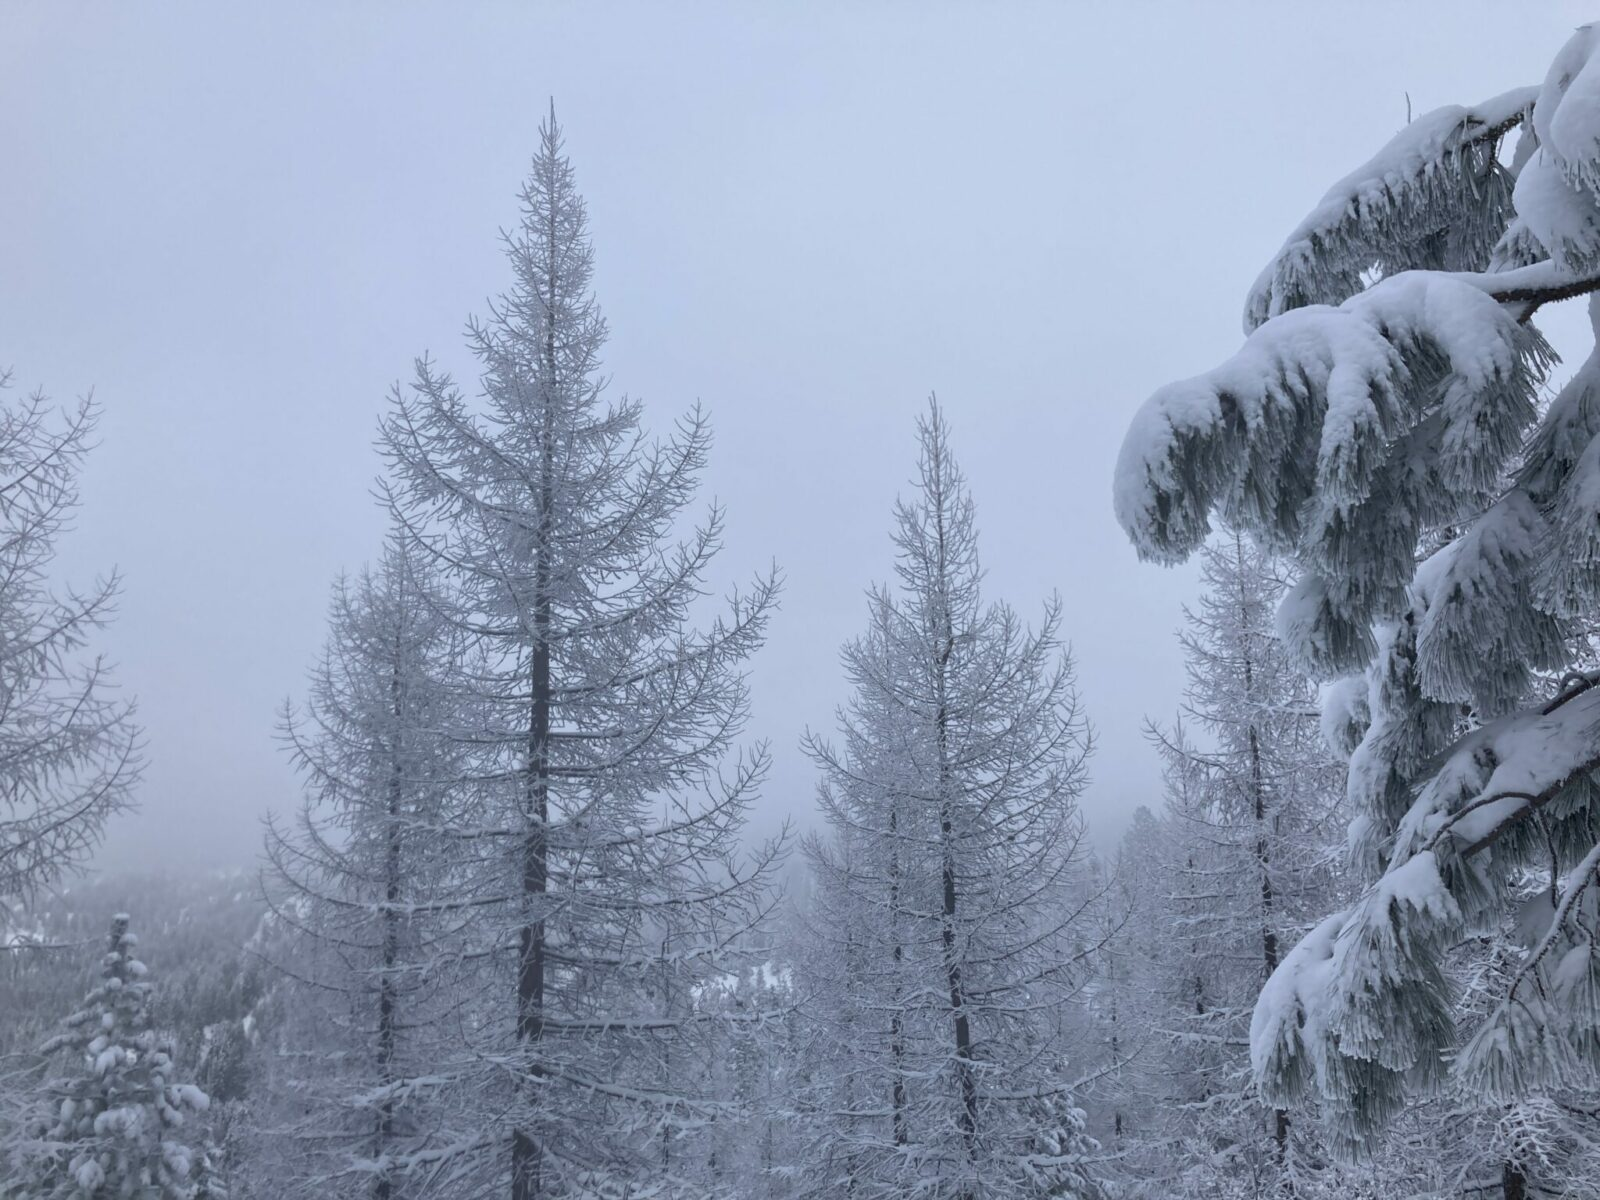 Larch trees in winter with fresh snow, surrounded by pine trees on a foggy day